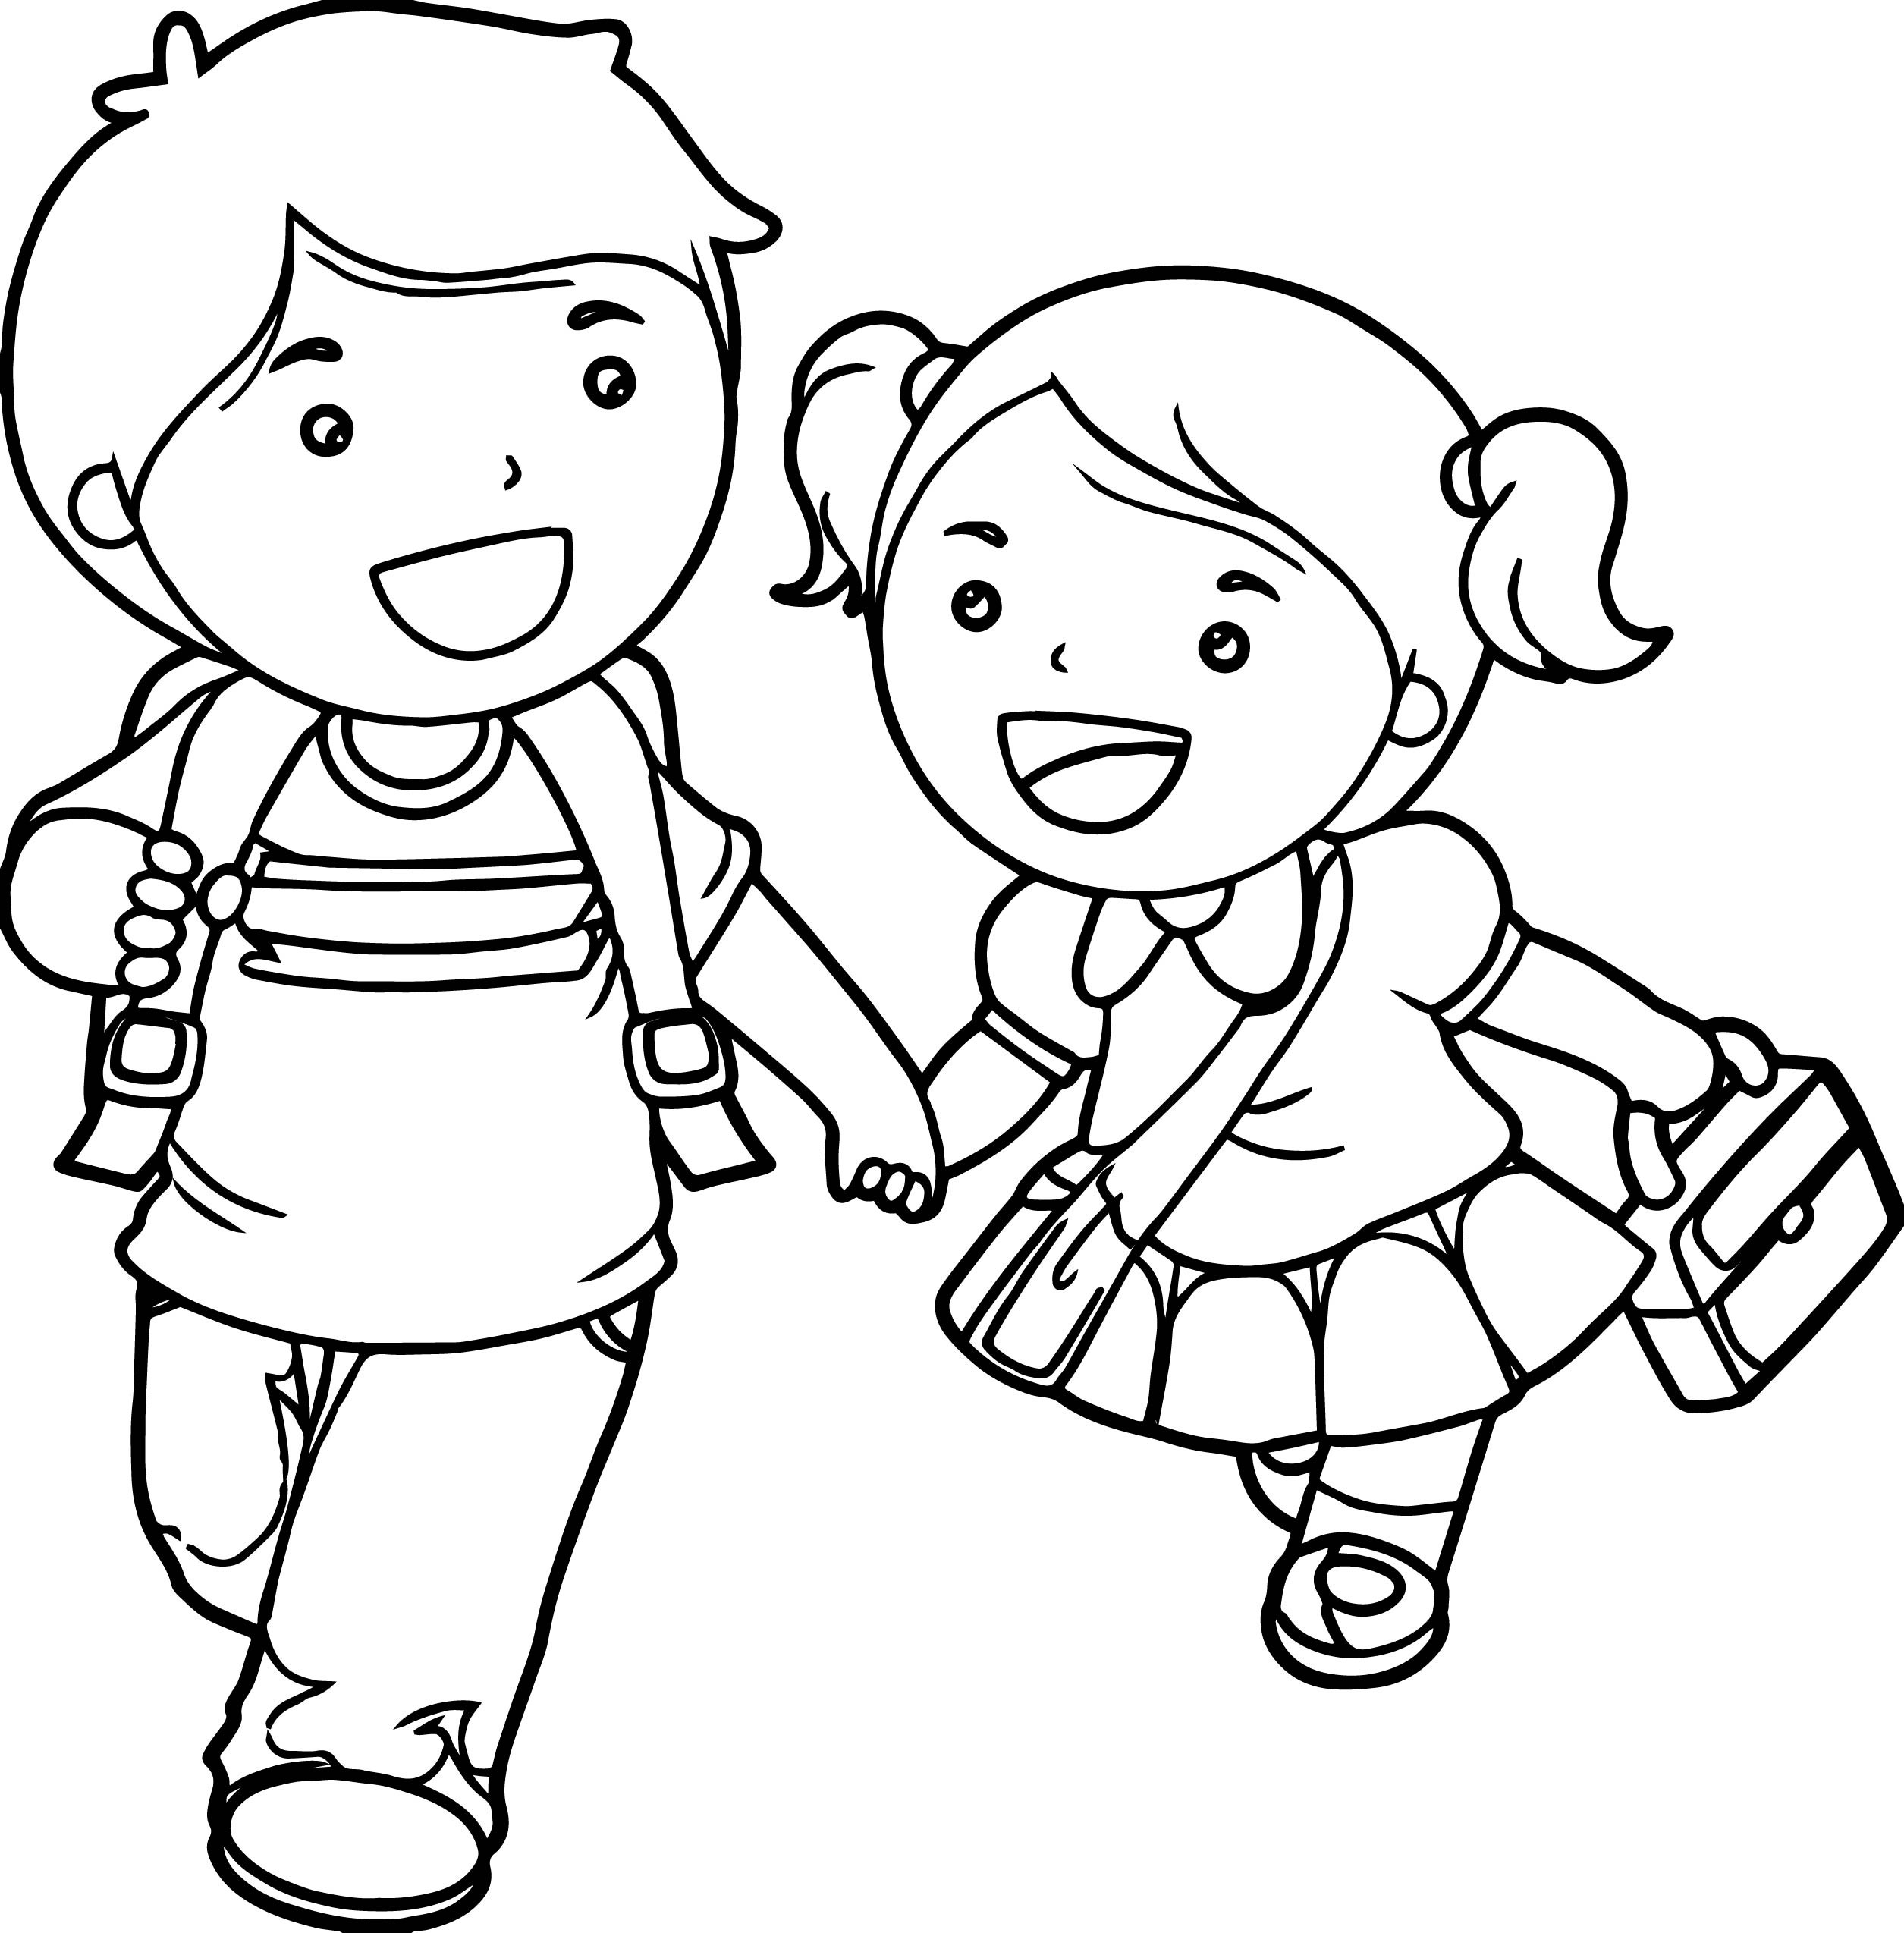 The Best Free Lovely Coloring Page Images Download From